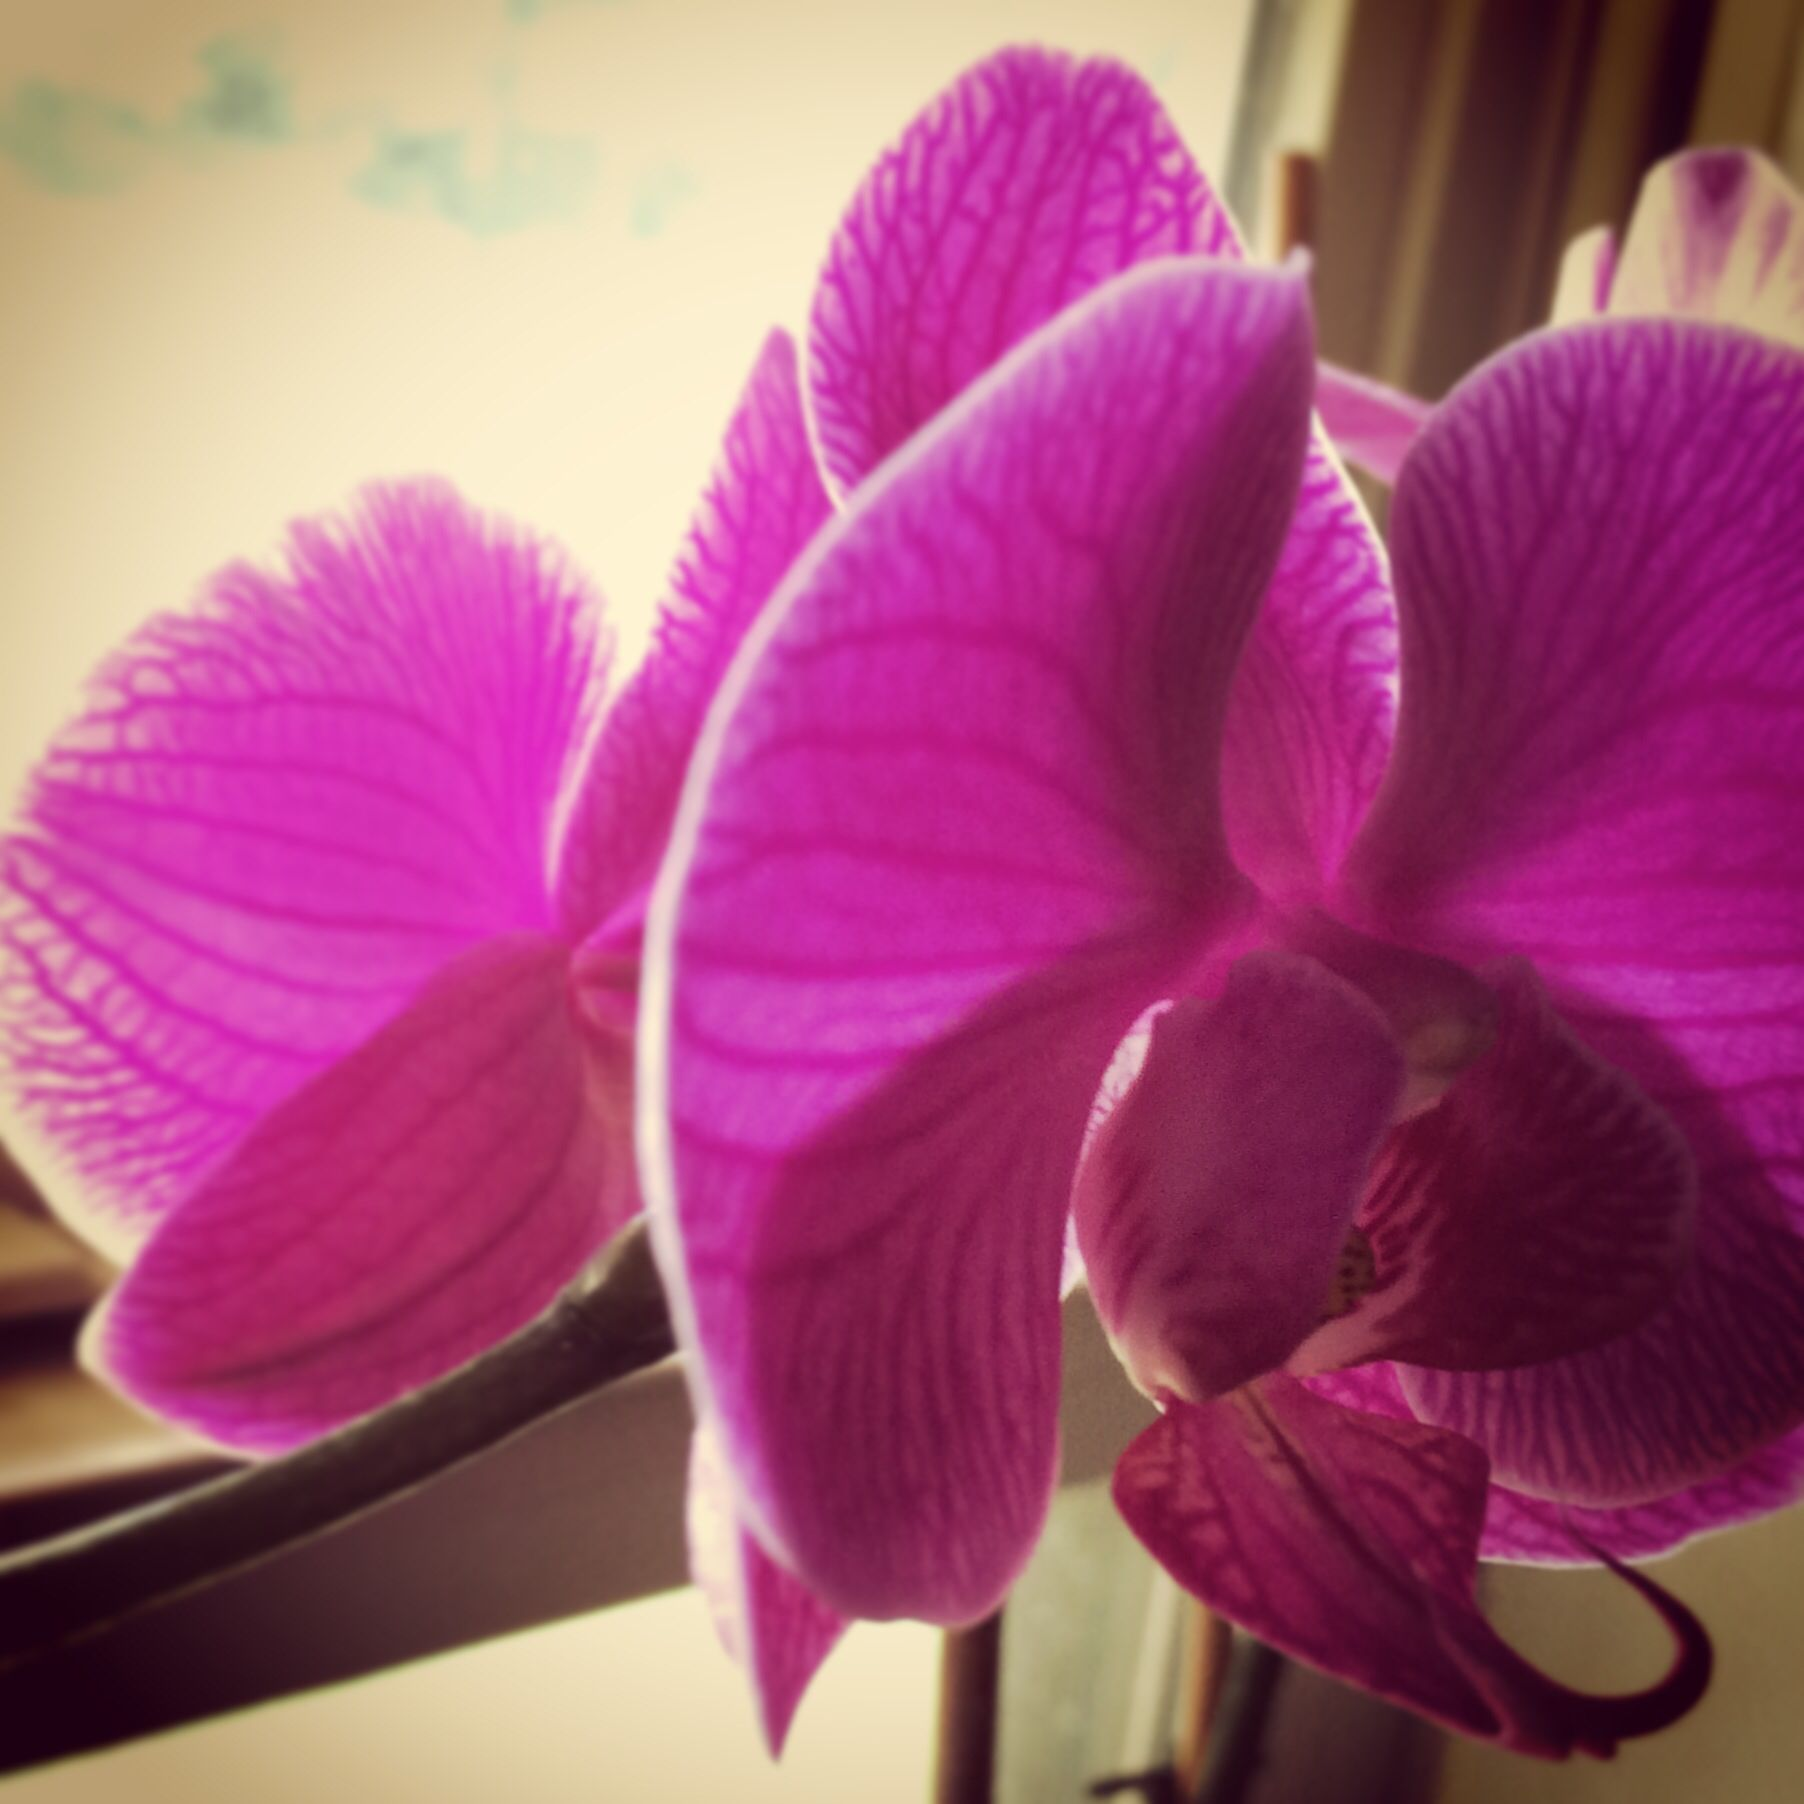 Orchids in the window that make me smile.. The fuscia beauty..